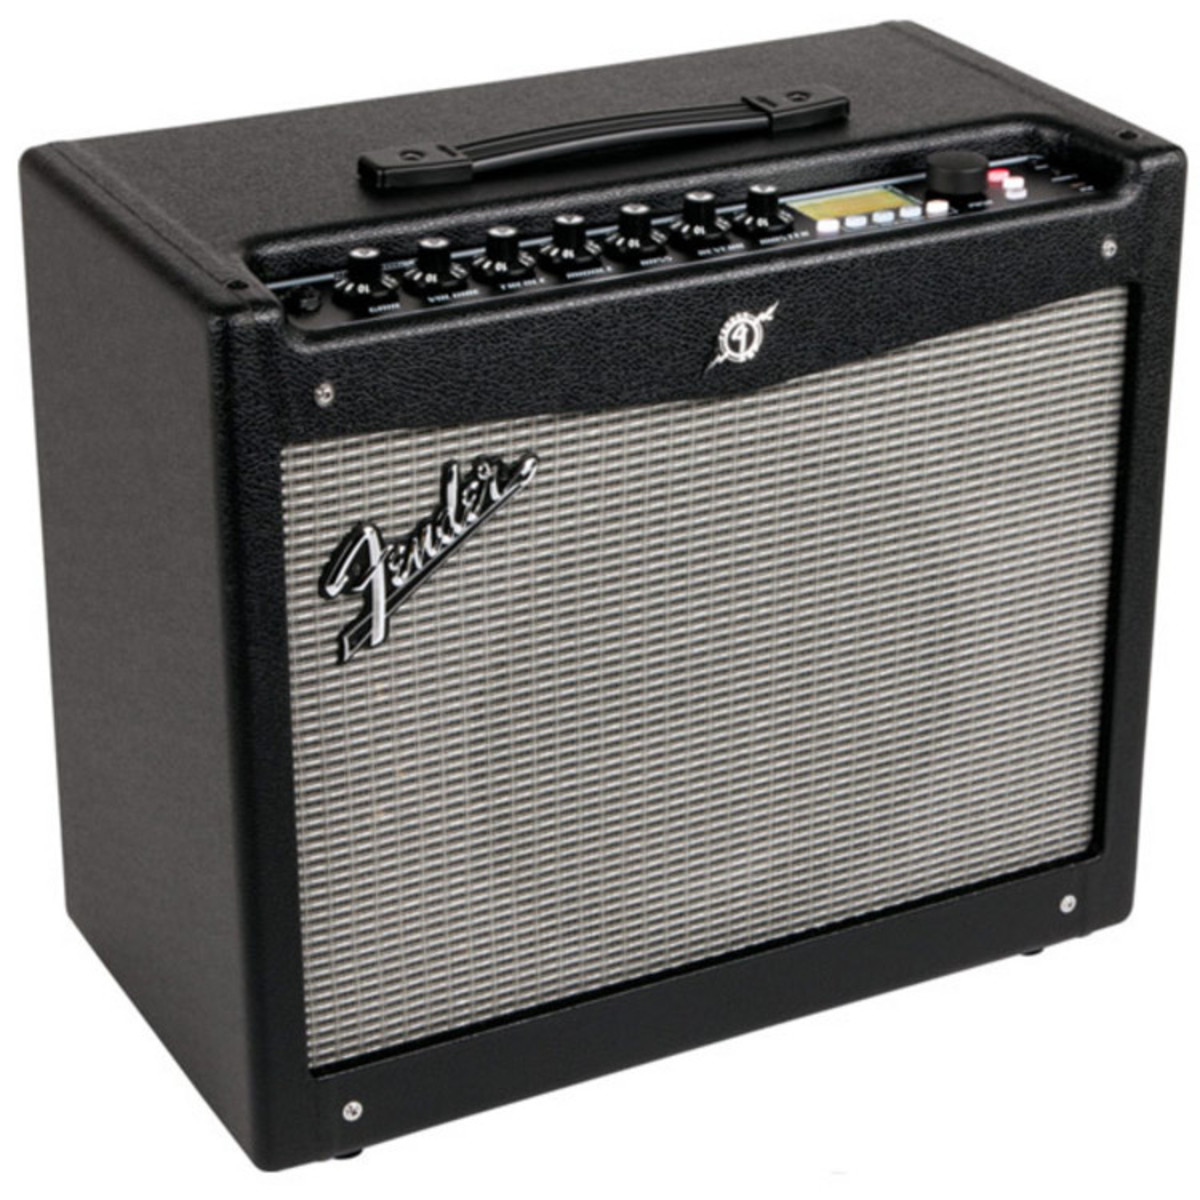 Fender Mustang III (V.2) Guitar Combo Amp at Gear4music.com